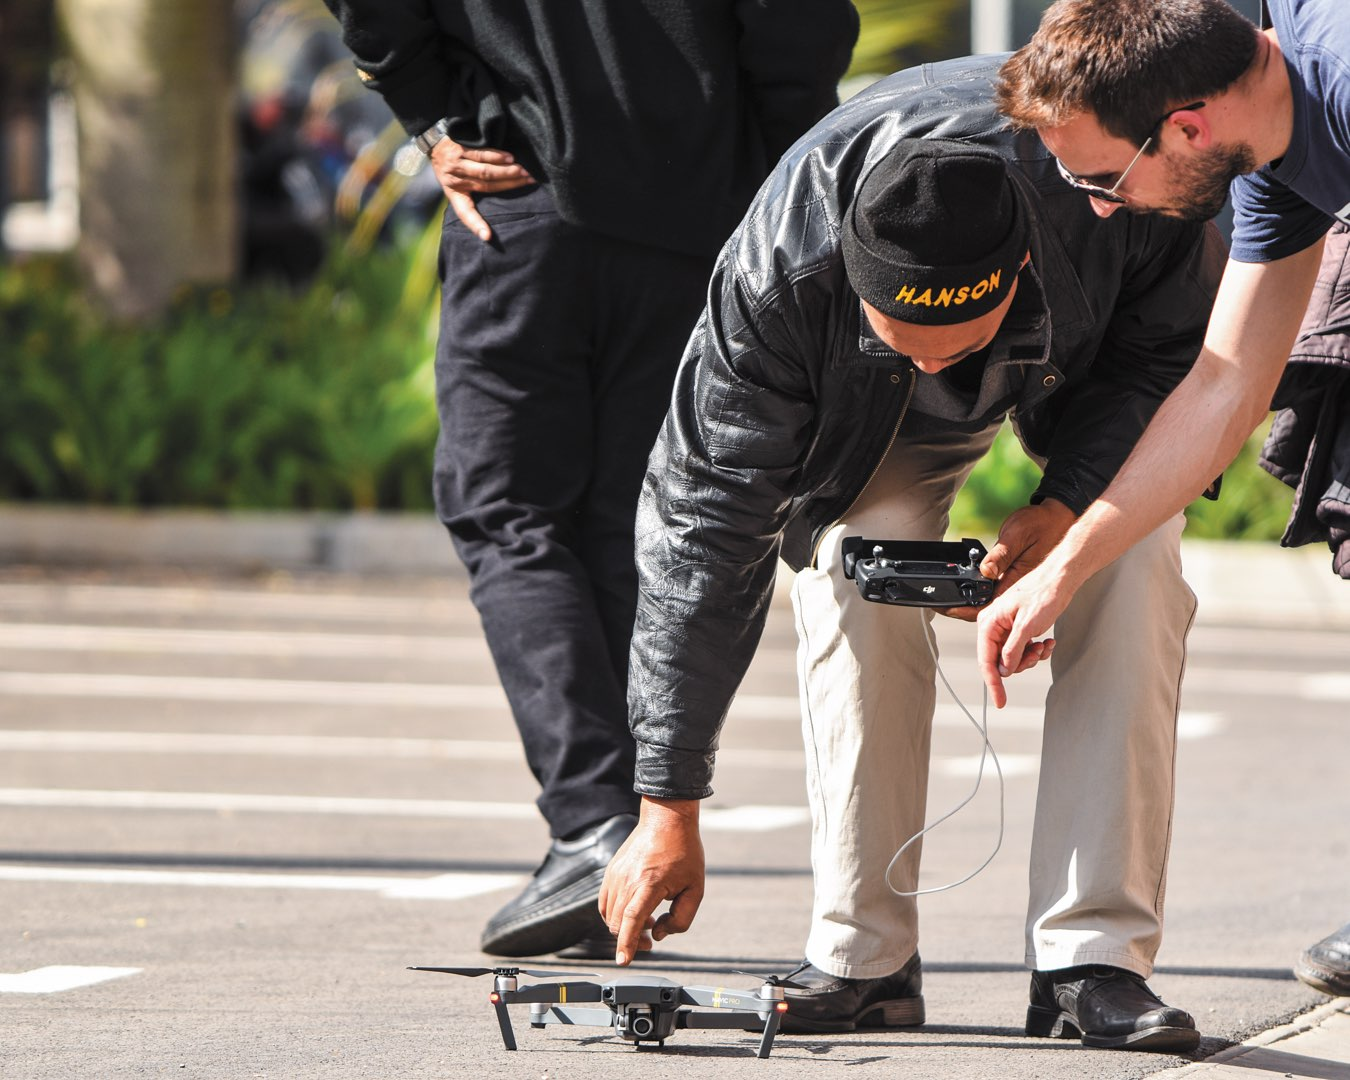 In a parking lot in Madagascar, a CRS staff person bends over a drone as Eric Wagner trains him to launch it